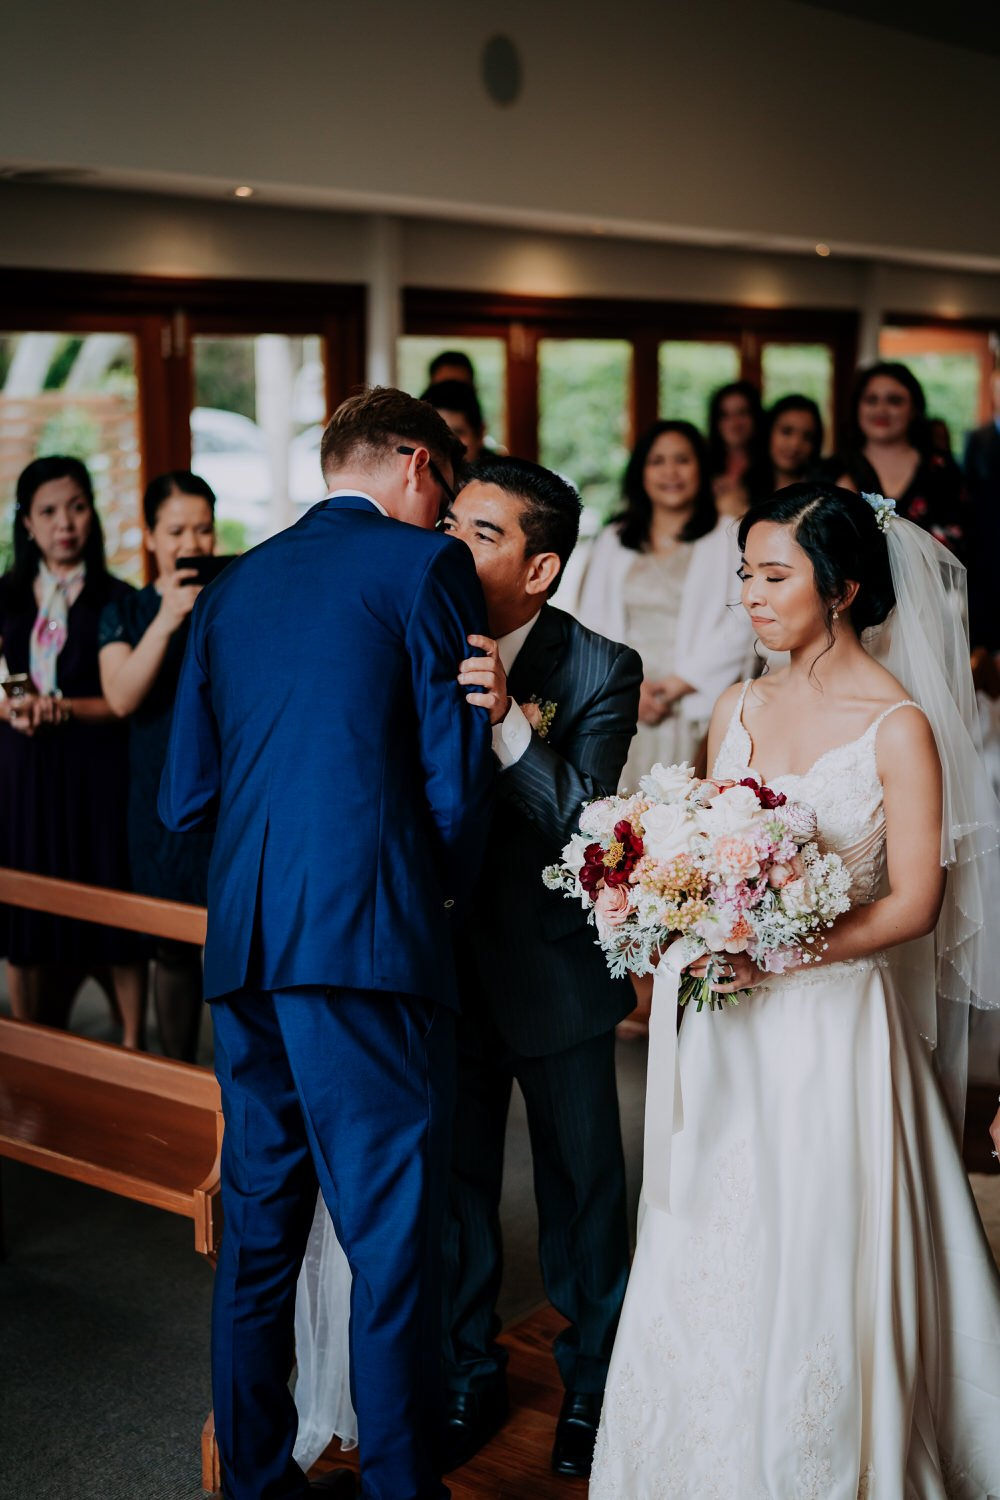 ava-me-photography-chelisa-james-canberra-boat-house-the-chapel-gold-creek-wedding-99